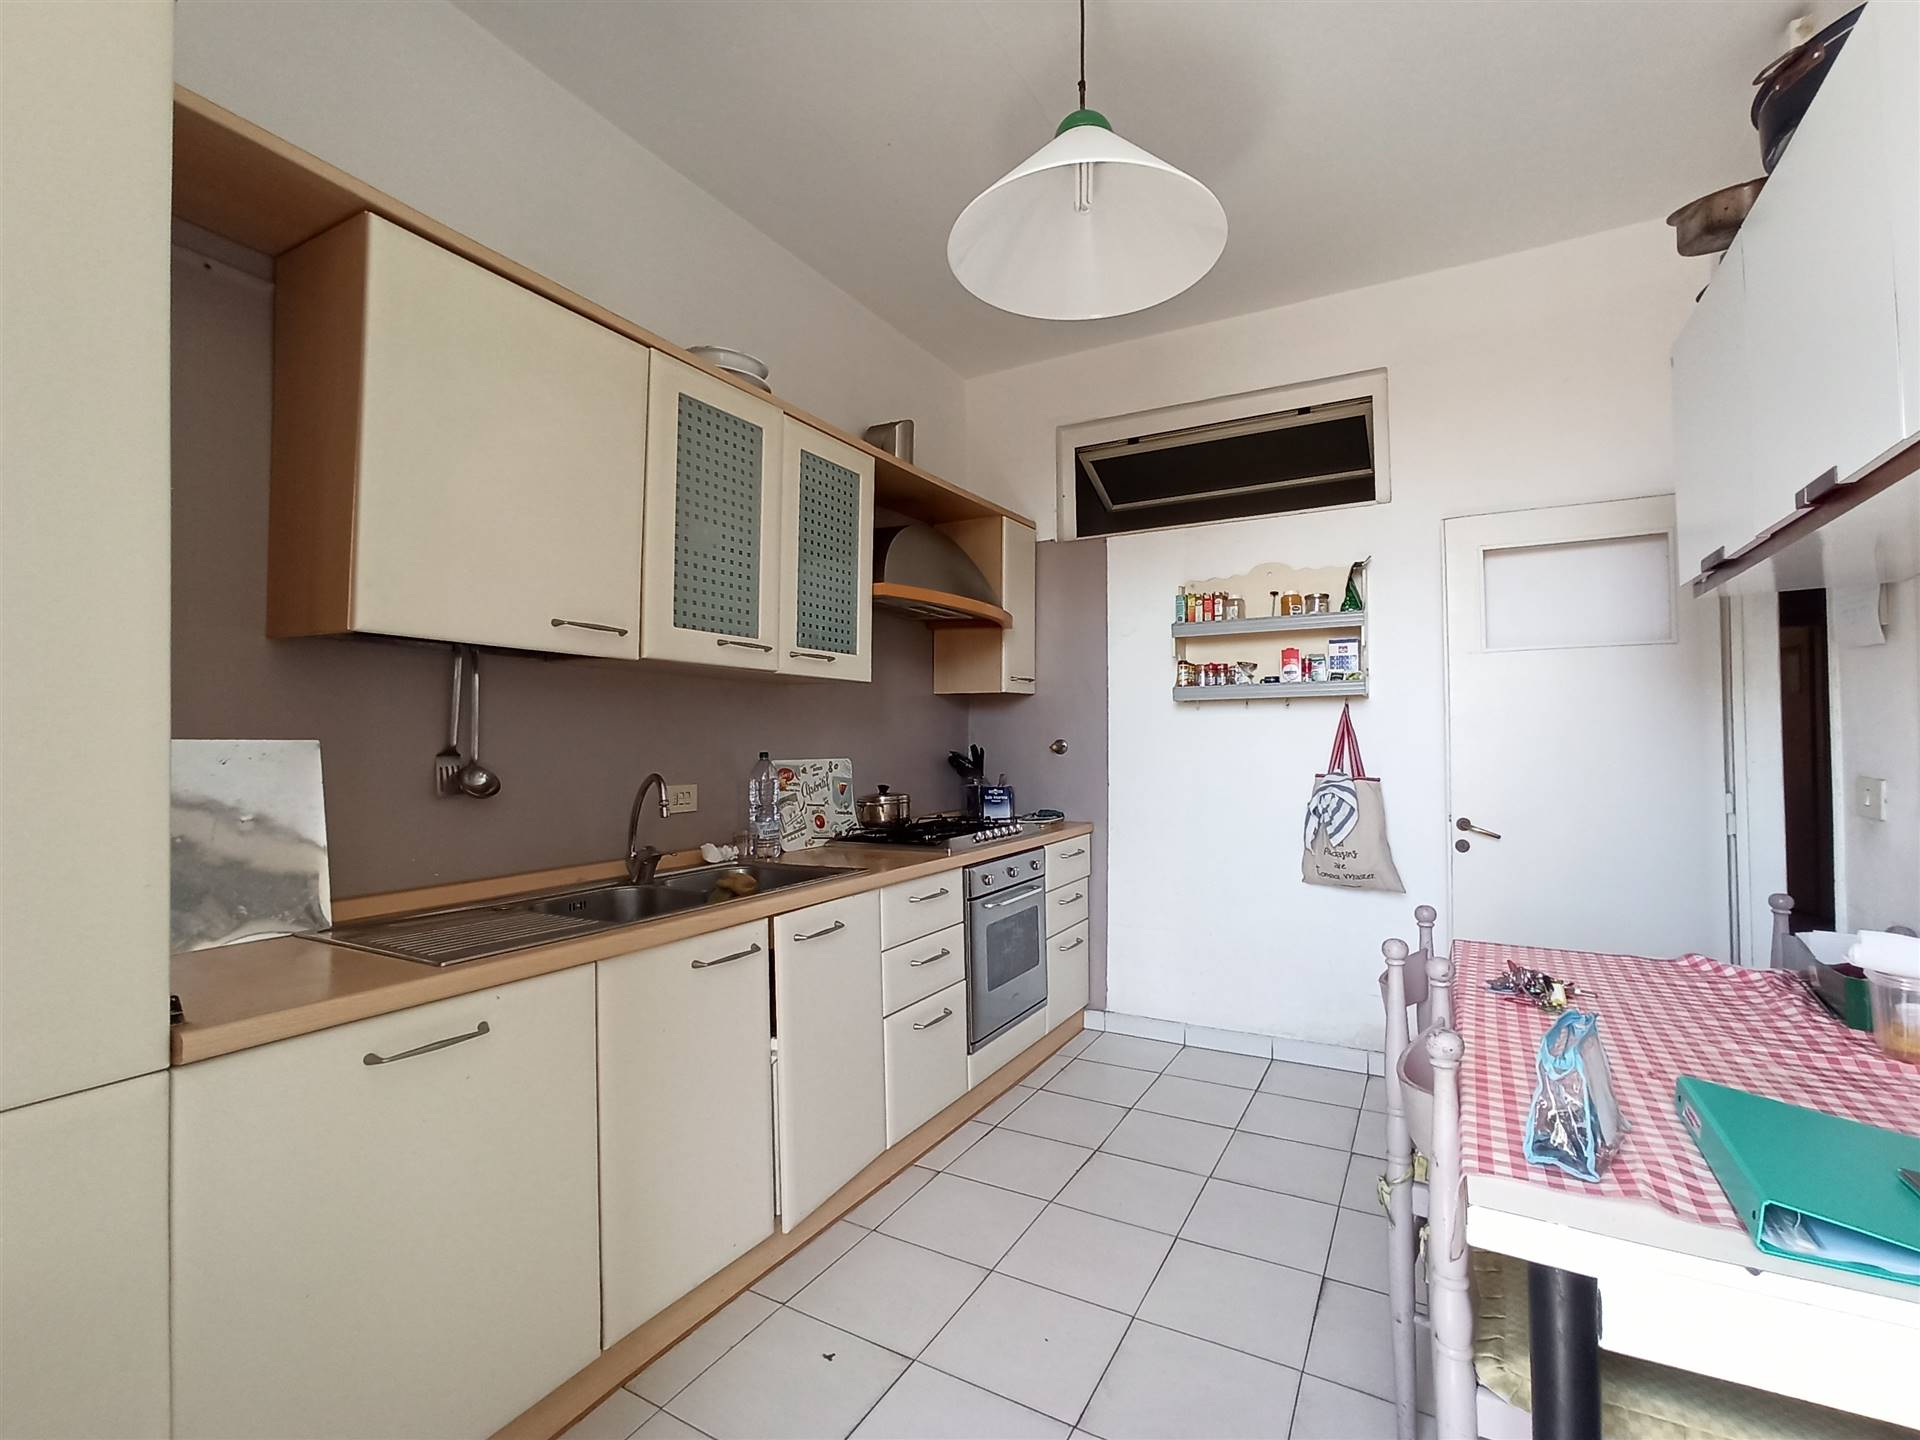 NOVOLI, FIRENZE, Apartment for sale of 80 Sq. mt., Habitable, Heating Individual heating system, Energetic class: G, placed at 2° on 4, composed by: